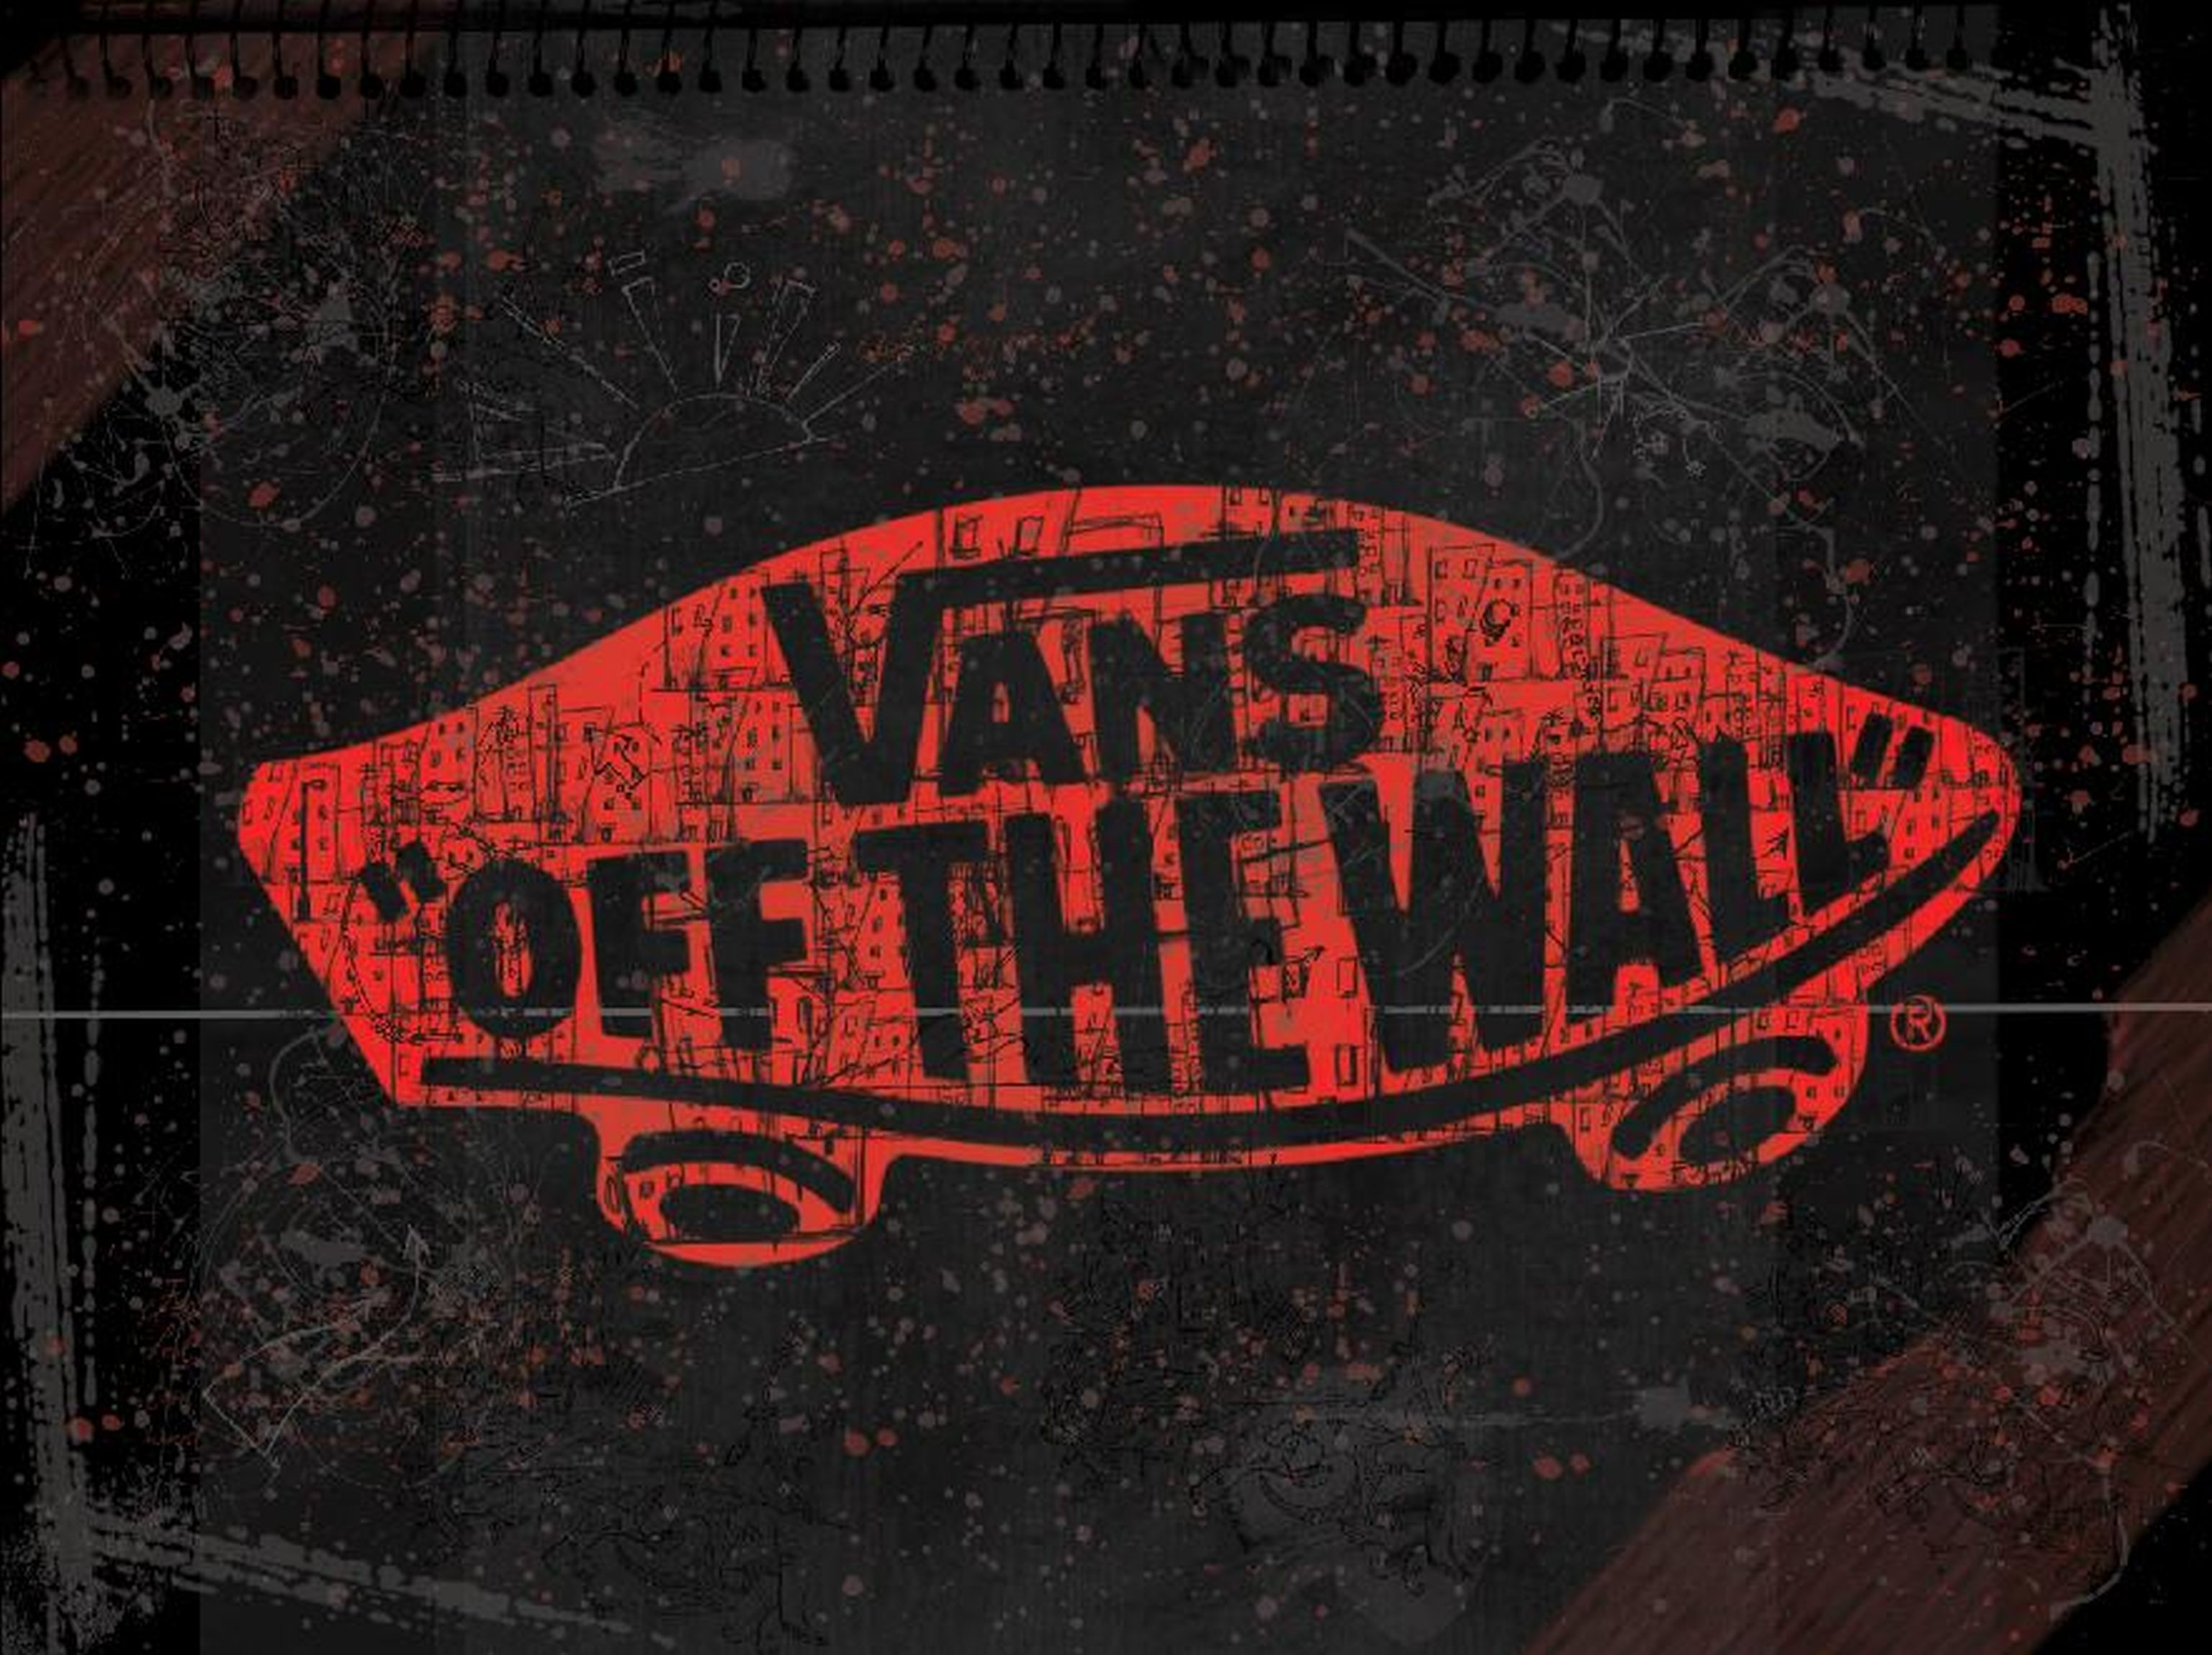 Vans Wallpaper 76 Wallpapers Hd Wallpapers Vans Off The Wall